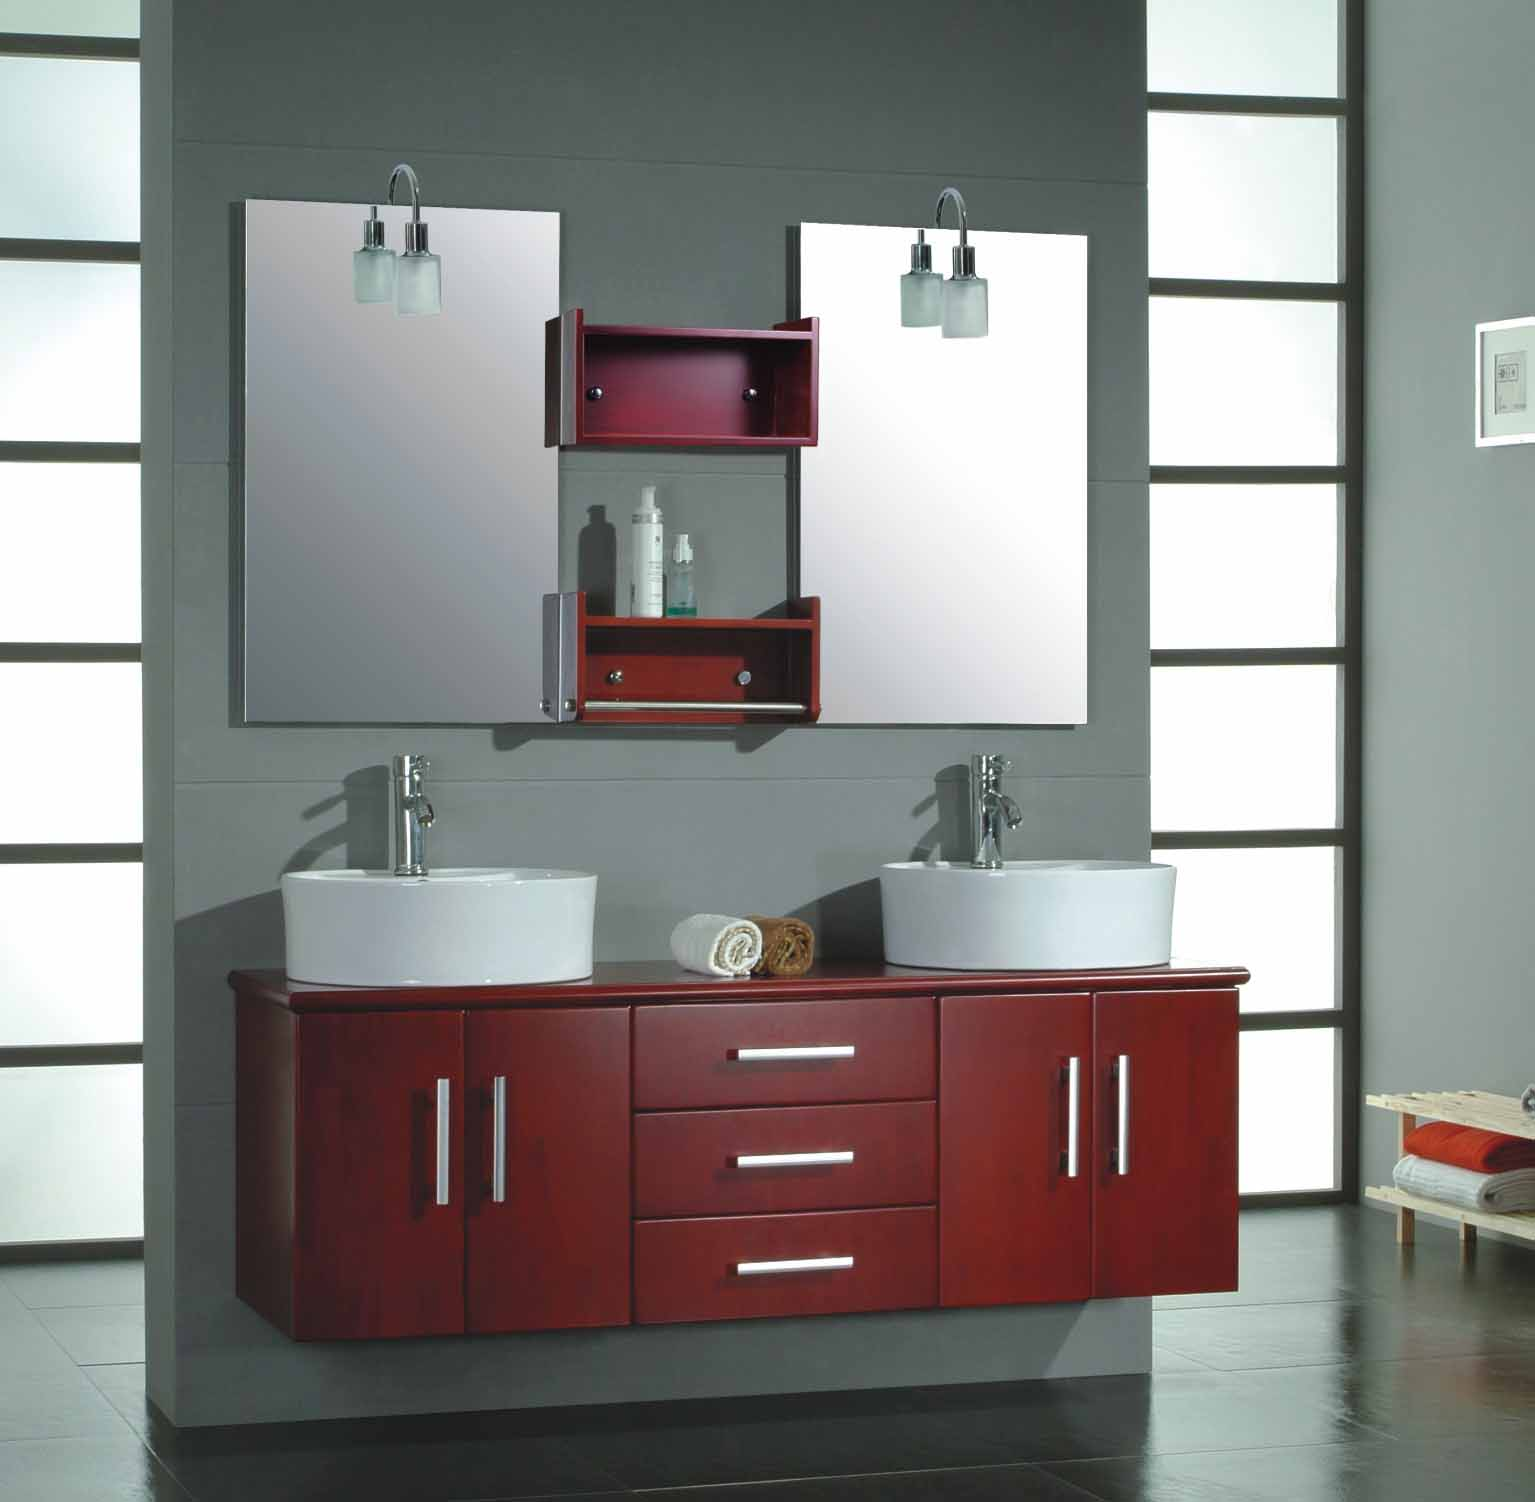 Interior design ideas bathroom furniture choosing furniture for your bathroom - Best furniture ...